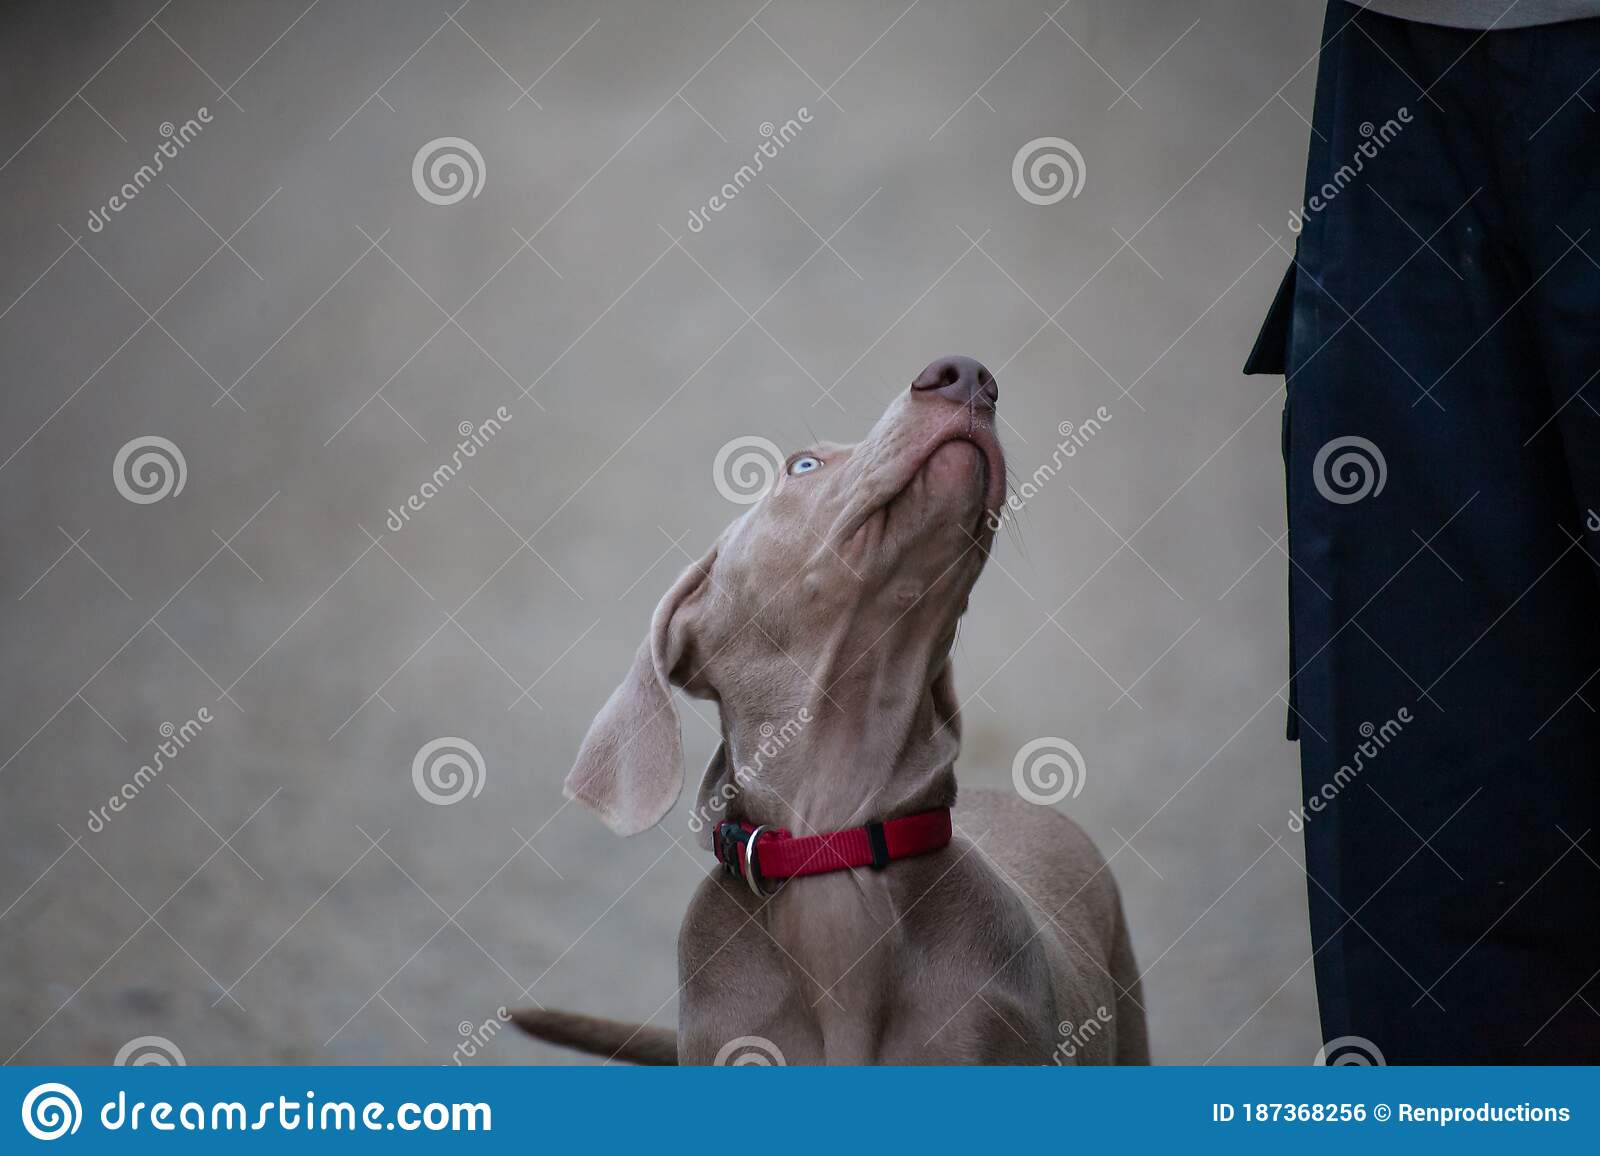 Weimaraner Puppy Takes His First Steps In Training Stock Photo Image Of Helper Birddog 187368256